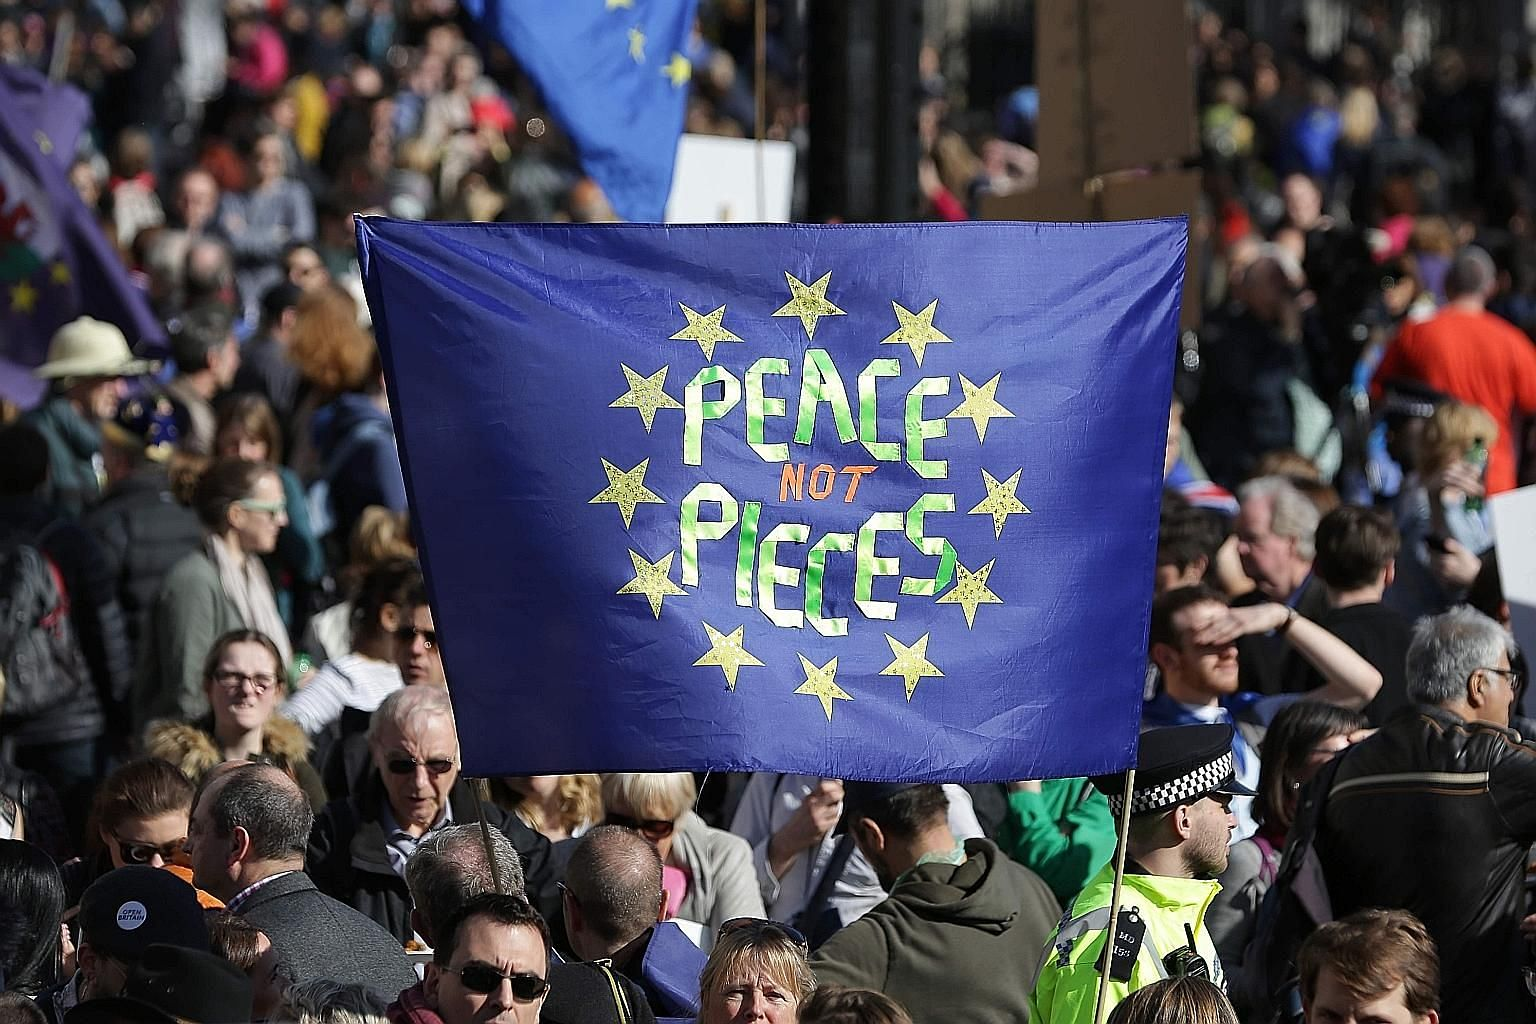 Demonstrators during an anti-Brexit, pro-EU march in central London on Saturday, ahead of the British government's planned triggering of Article 50 to kickstart formal Brexit proceedings.